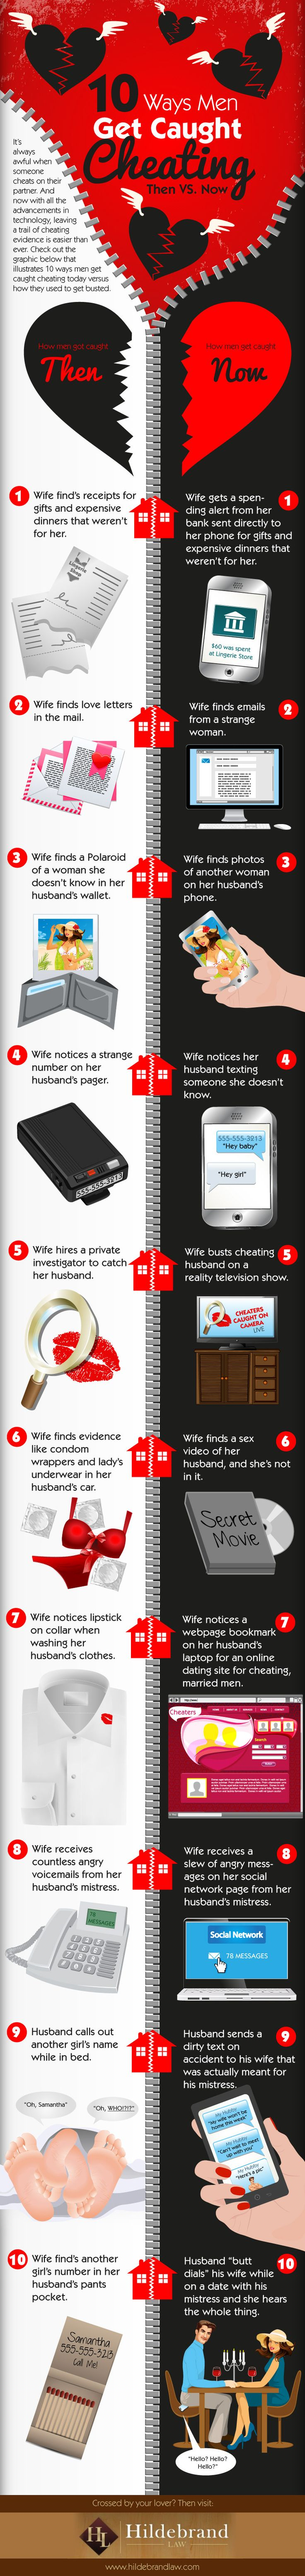 Best Caught Cheating Ideas On Pinterest Funny Text Messages - 25 cheaters busted in the best way ever